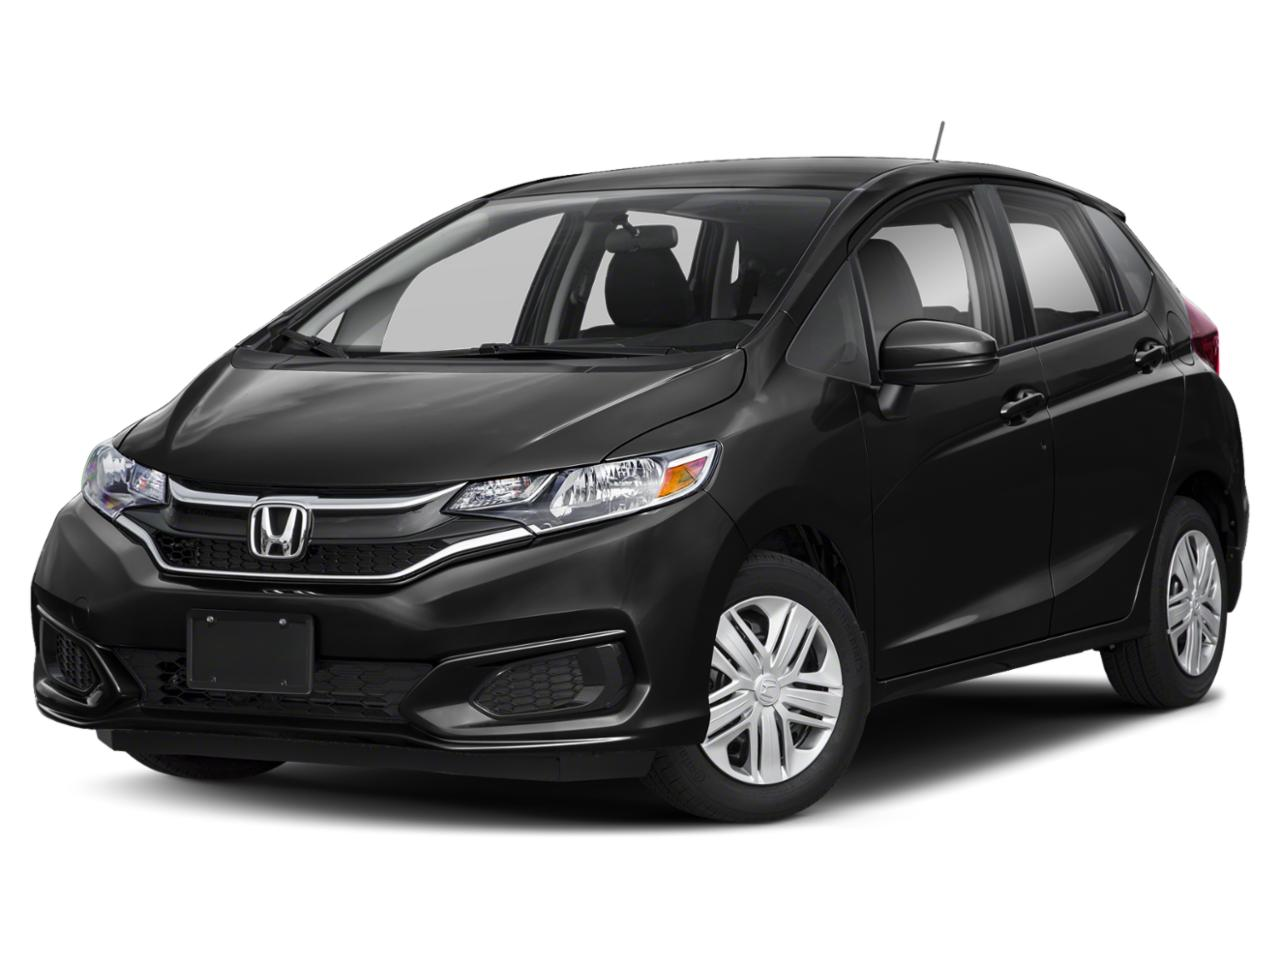 2019 Honda Fit Vehicle Photo in Concord, NC 28027